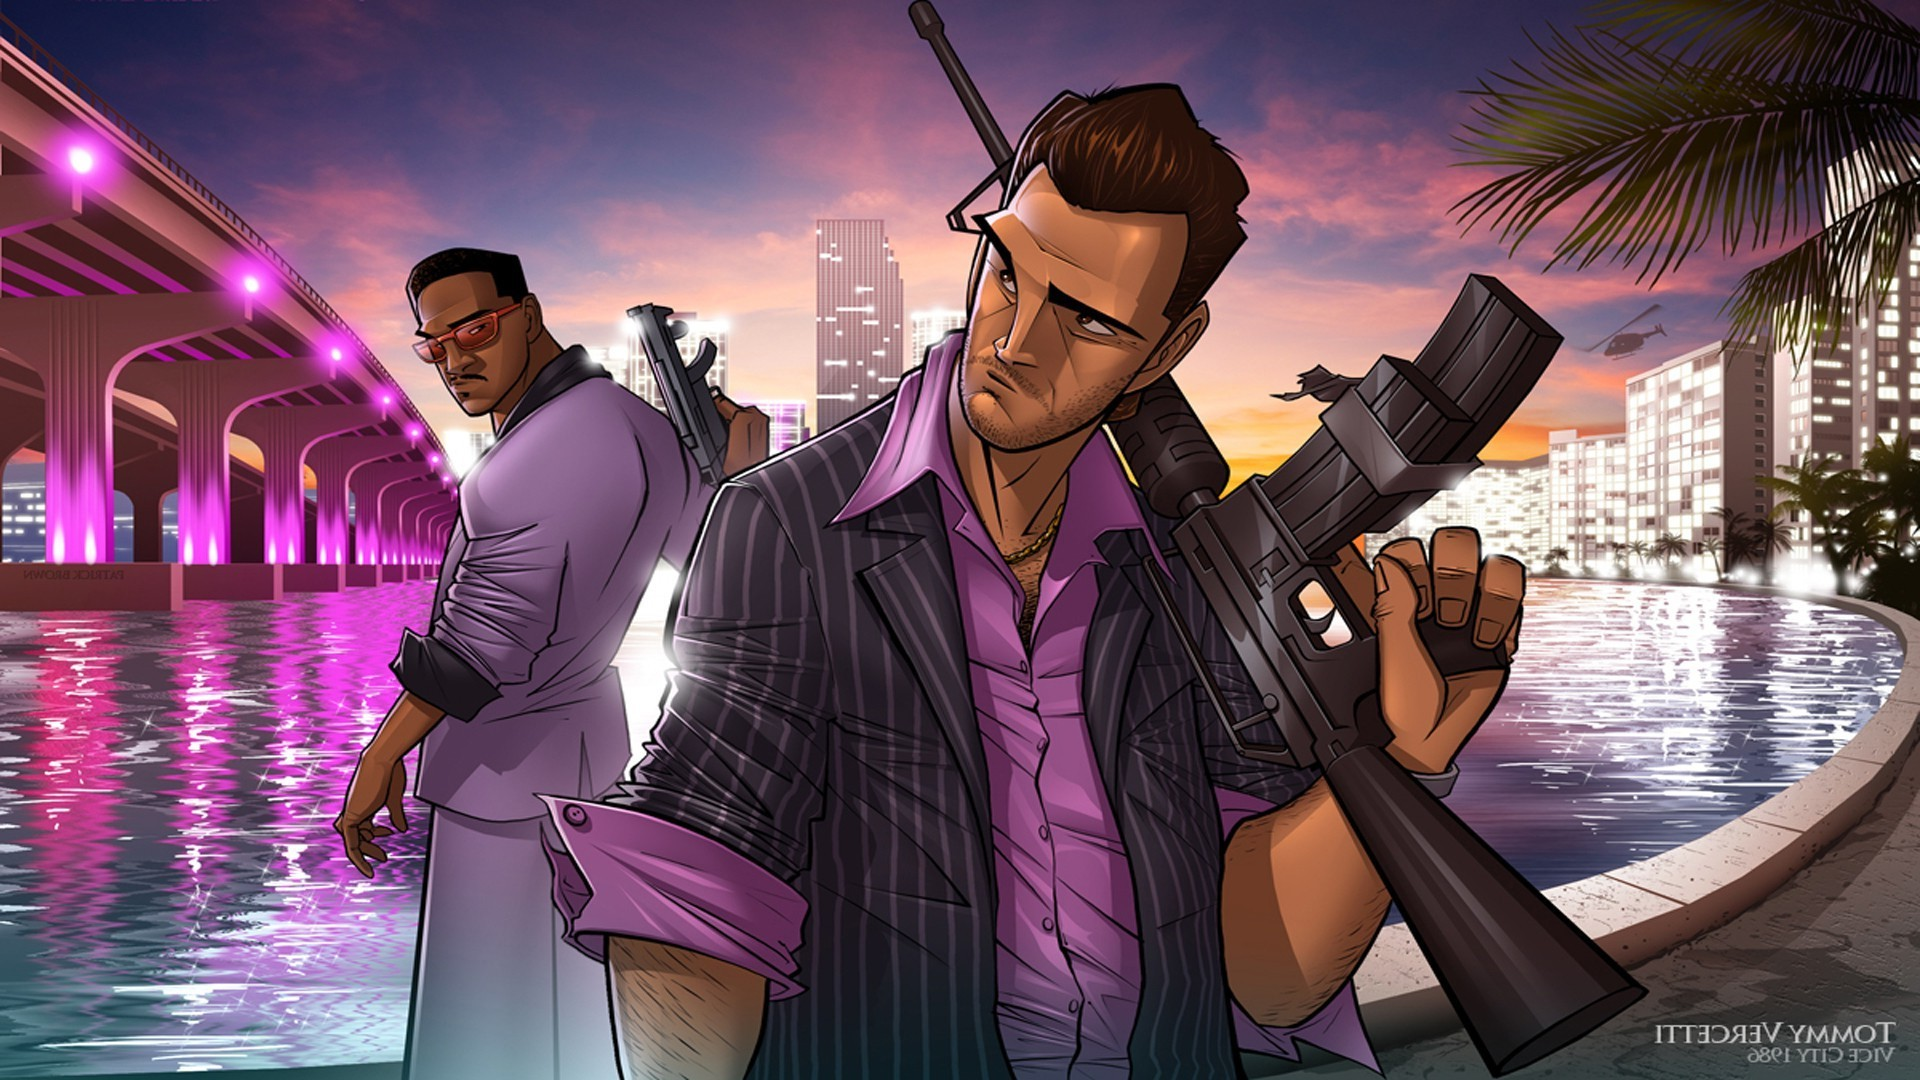 1920x1080 Grand Theft Auto Vice City, PC Gaming, Tommy Vercetti .